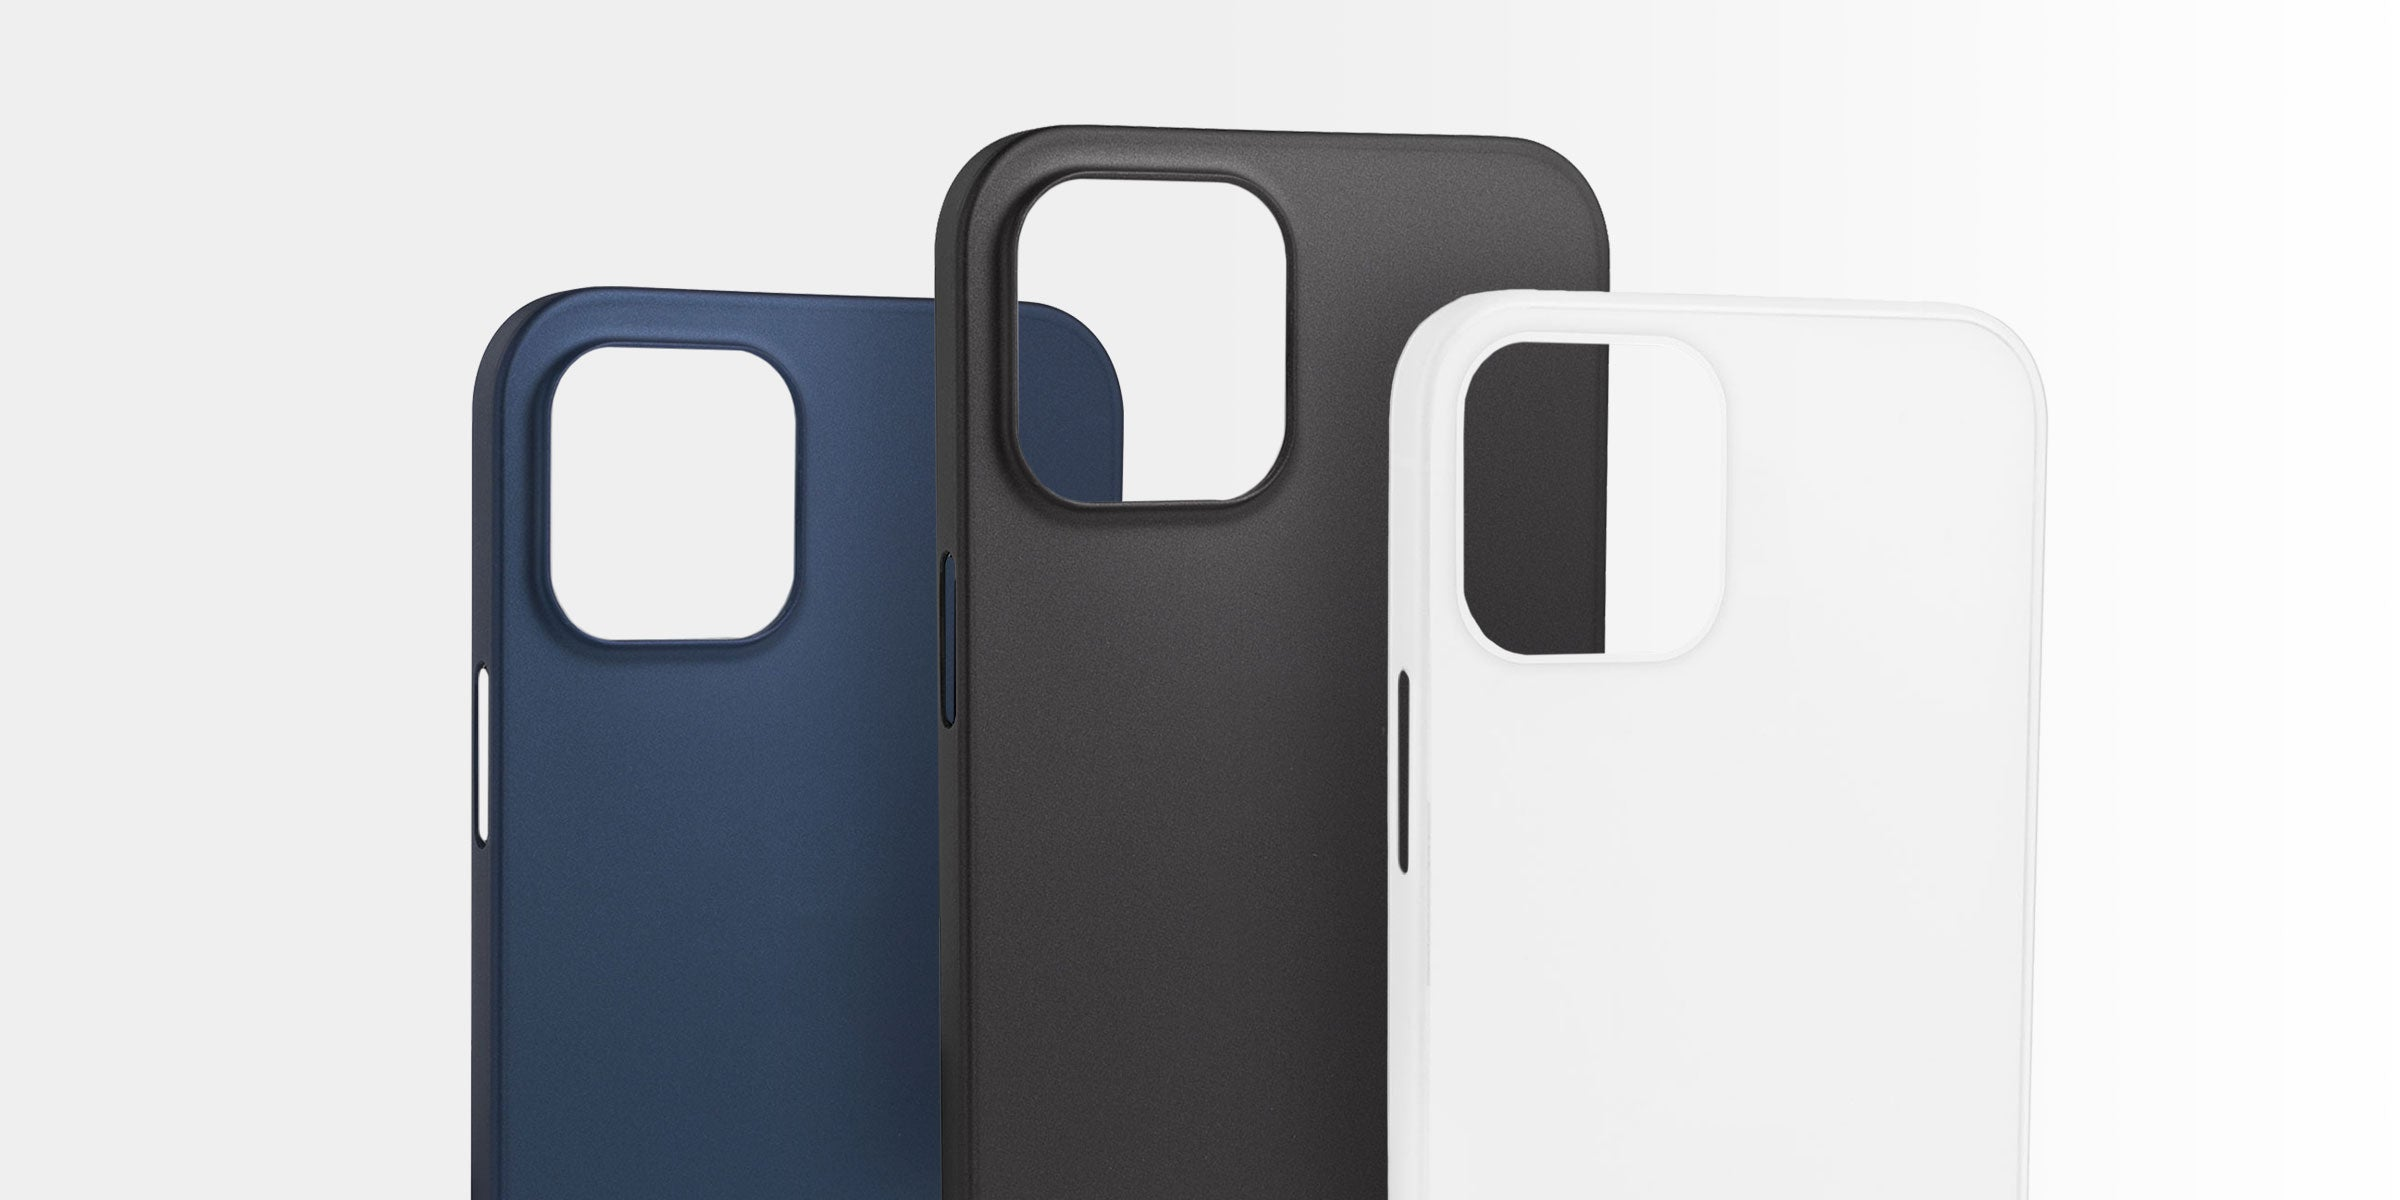 iPhone 12 series thin cases